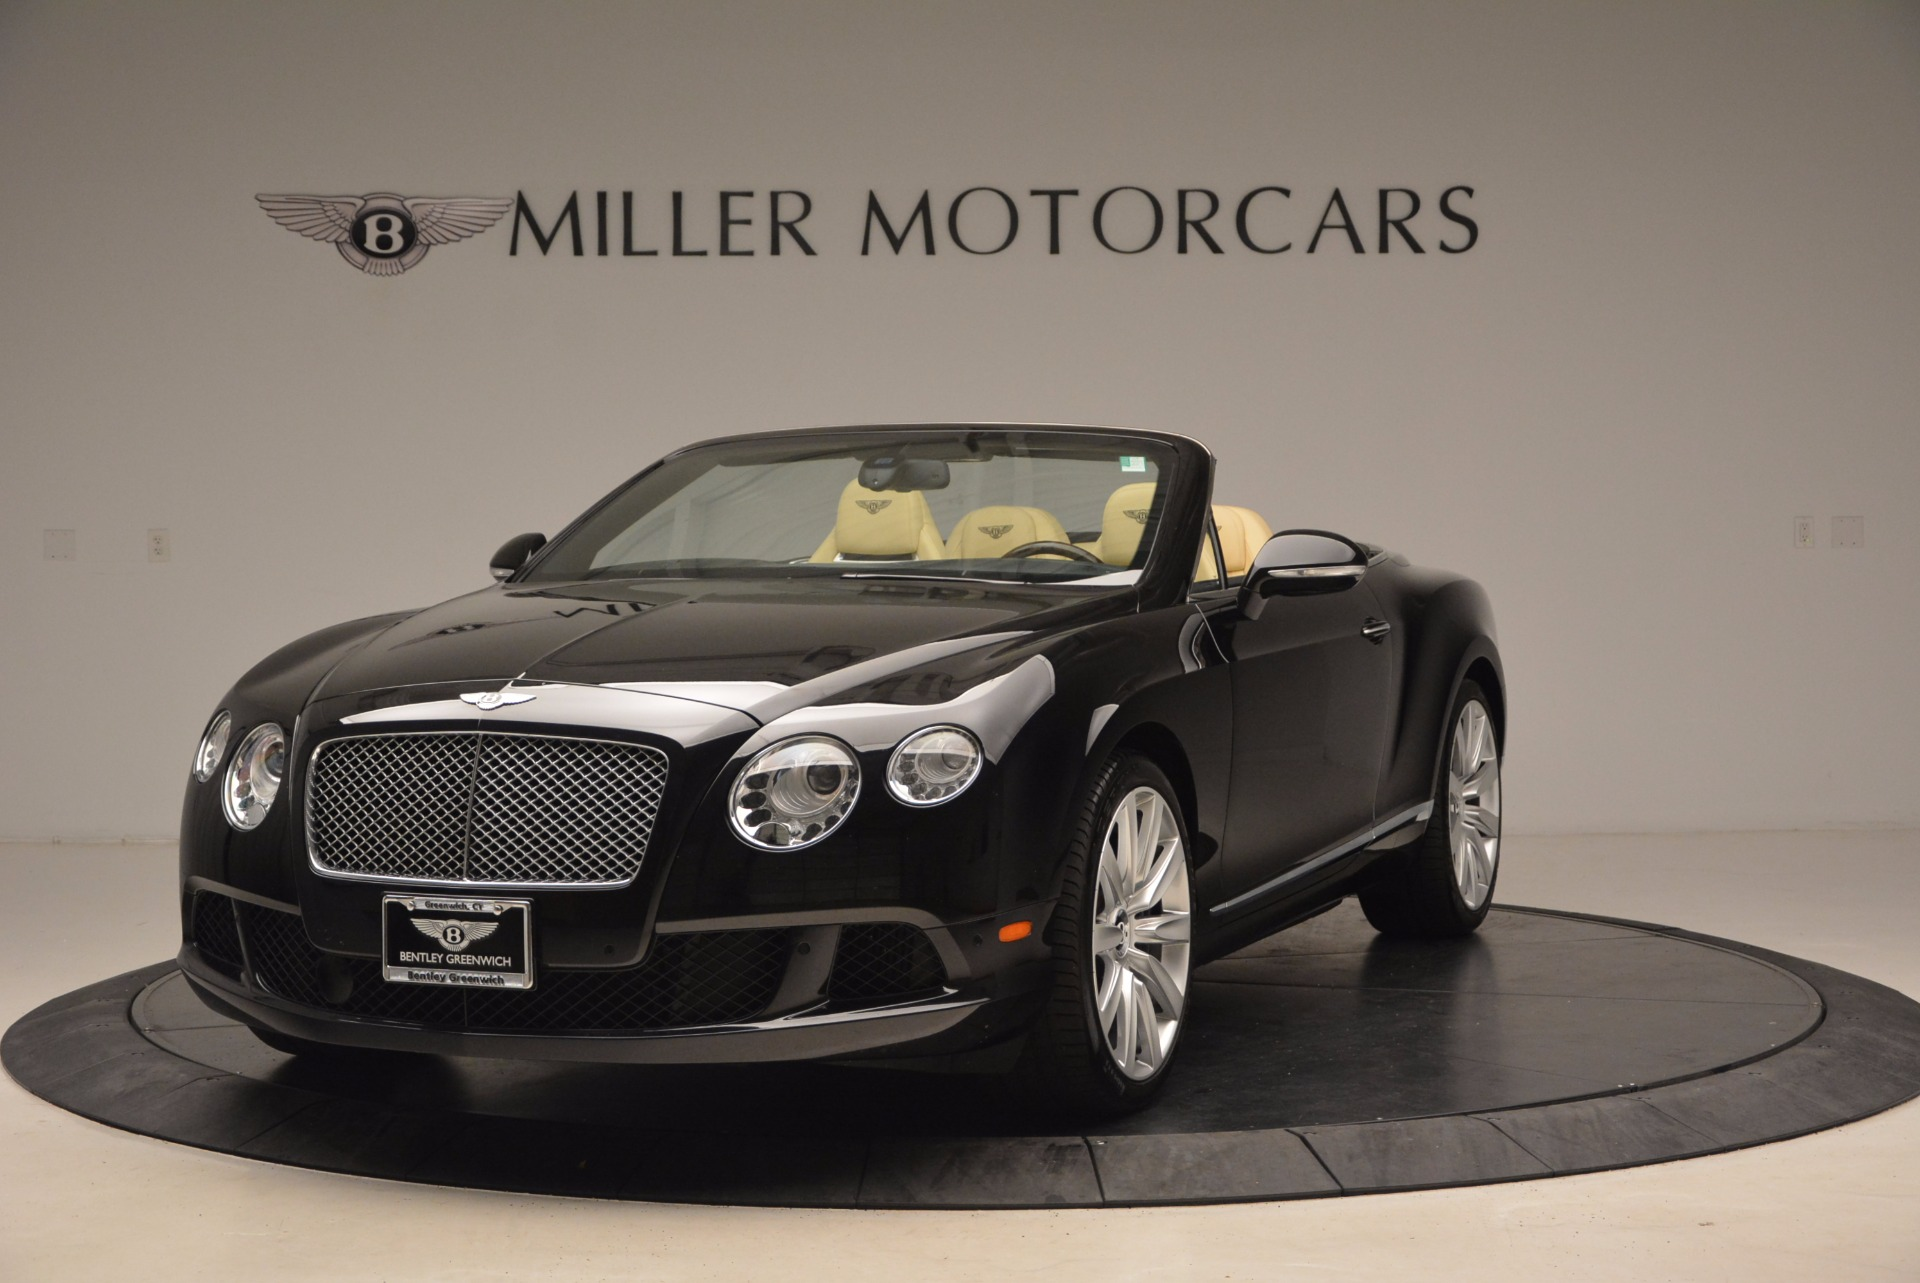 Used 2012 Bentley Continental GT W12 for sale Sold at Aston Martin of Greenwich in Greenwich CT 06830 1